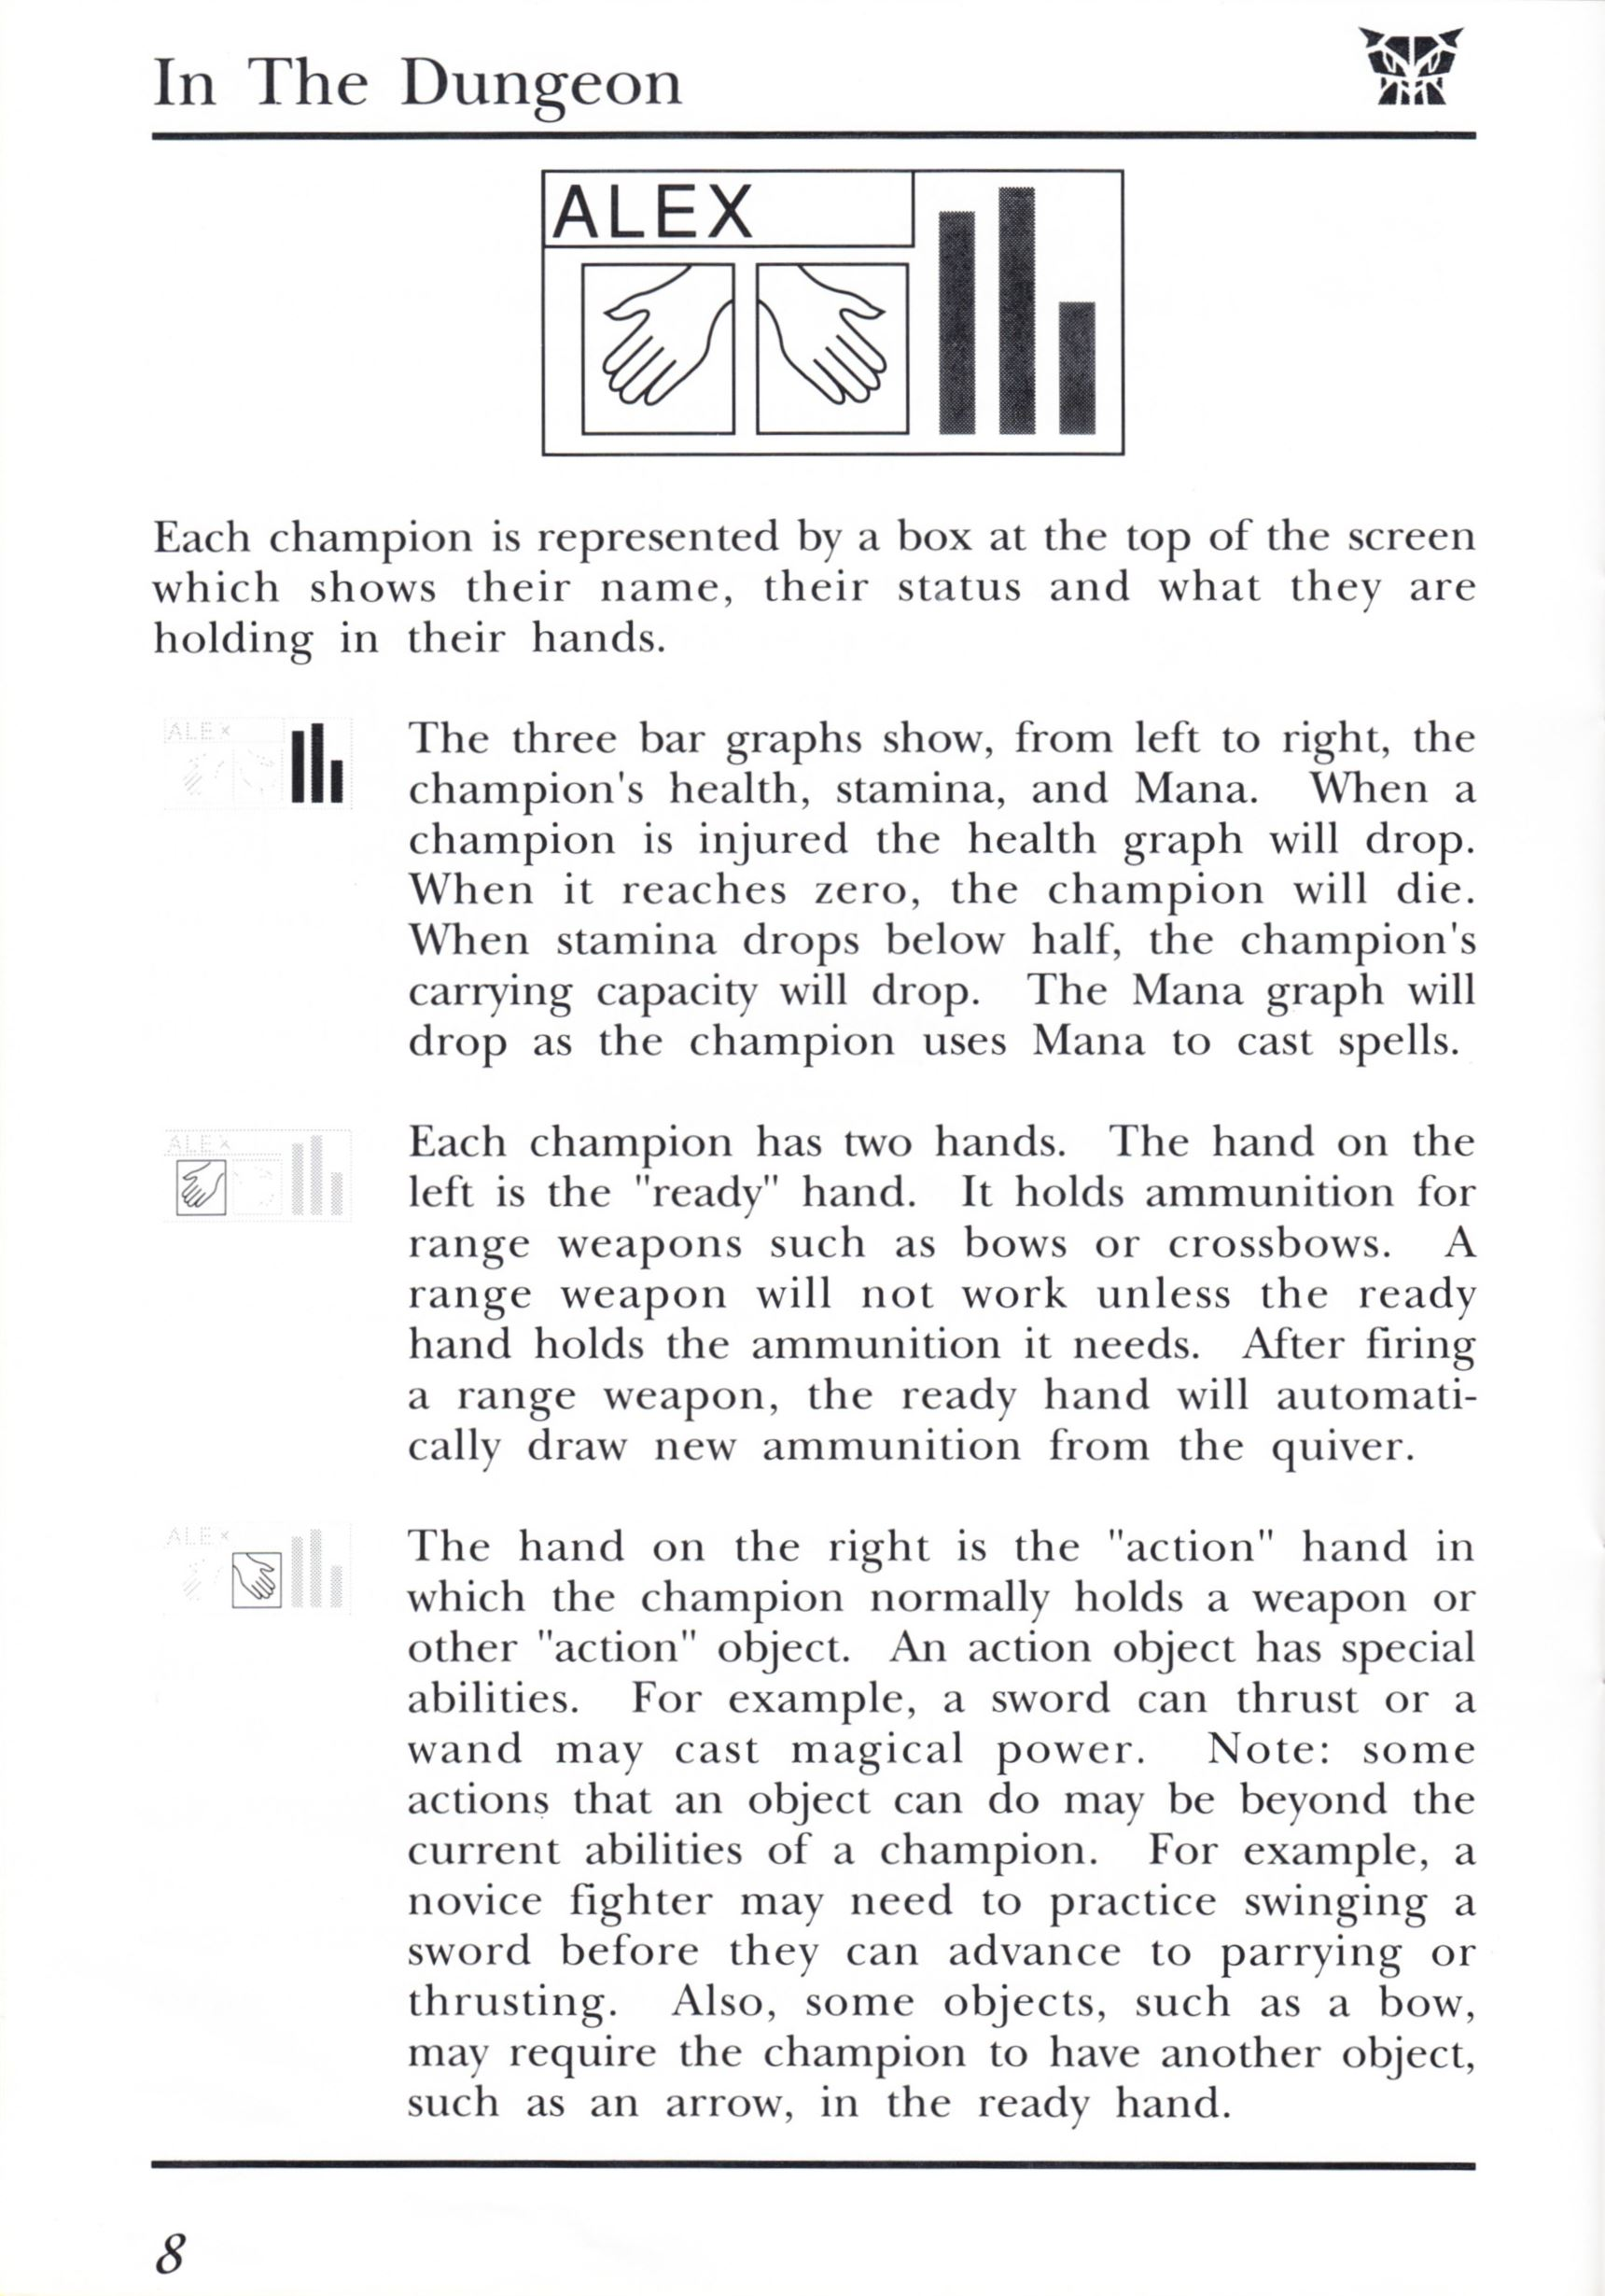 Game - Dungeon Master - UK - PC - Psygnosis - Manual - Page 028 - Scan